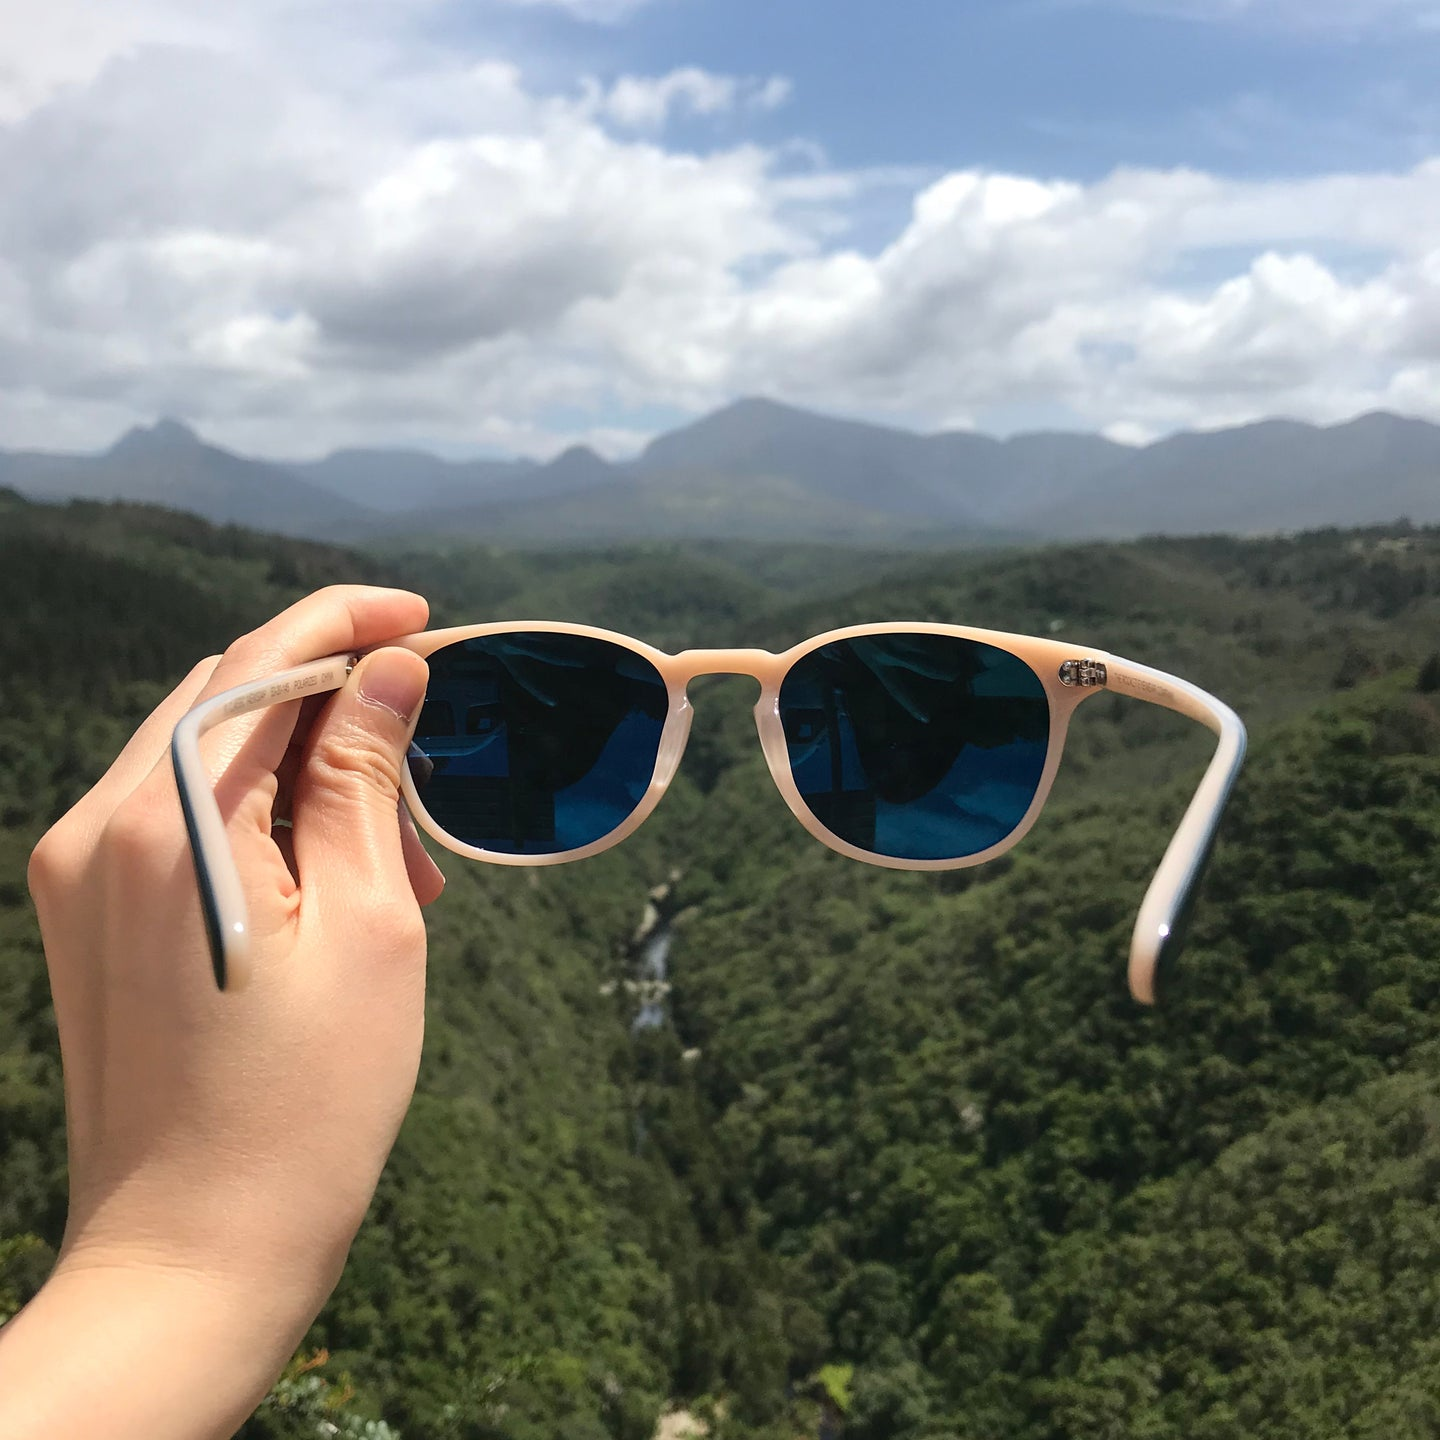 Win Limited Edition Rocket Sunglasses